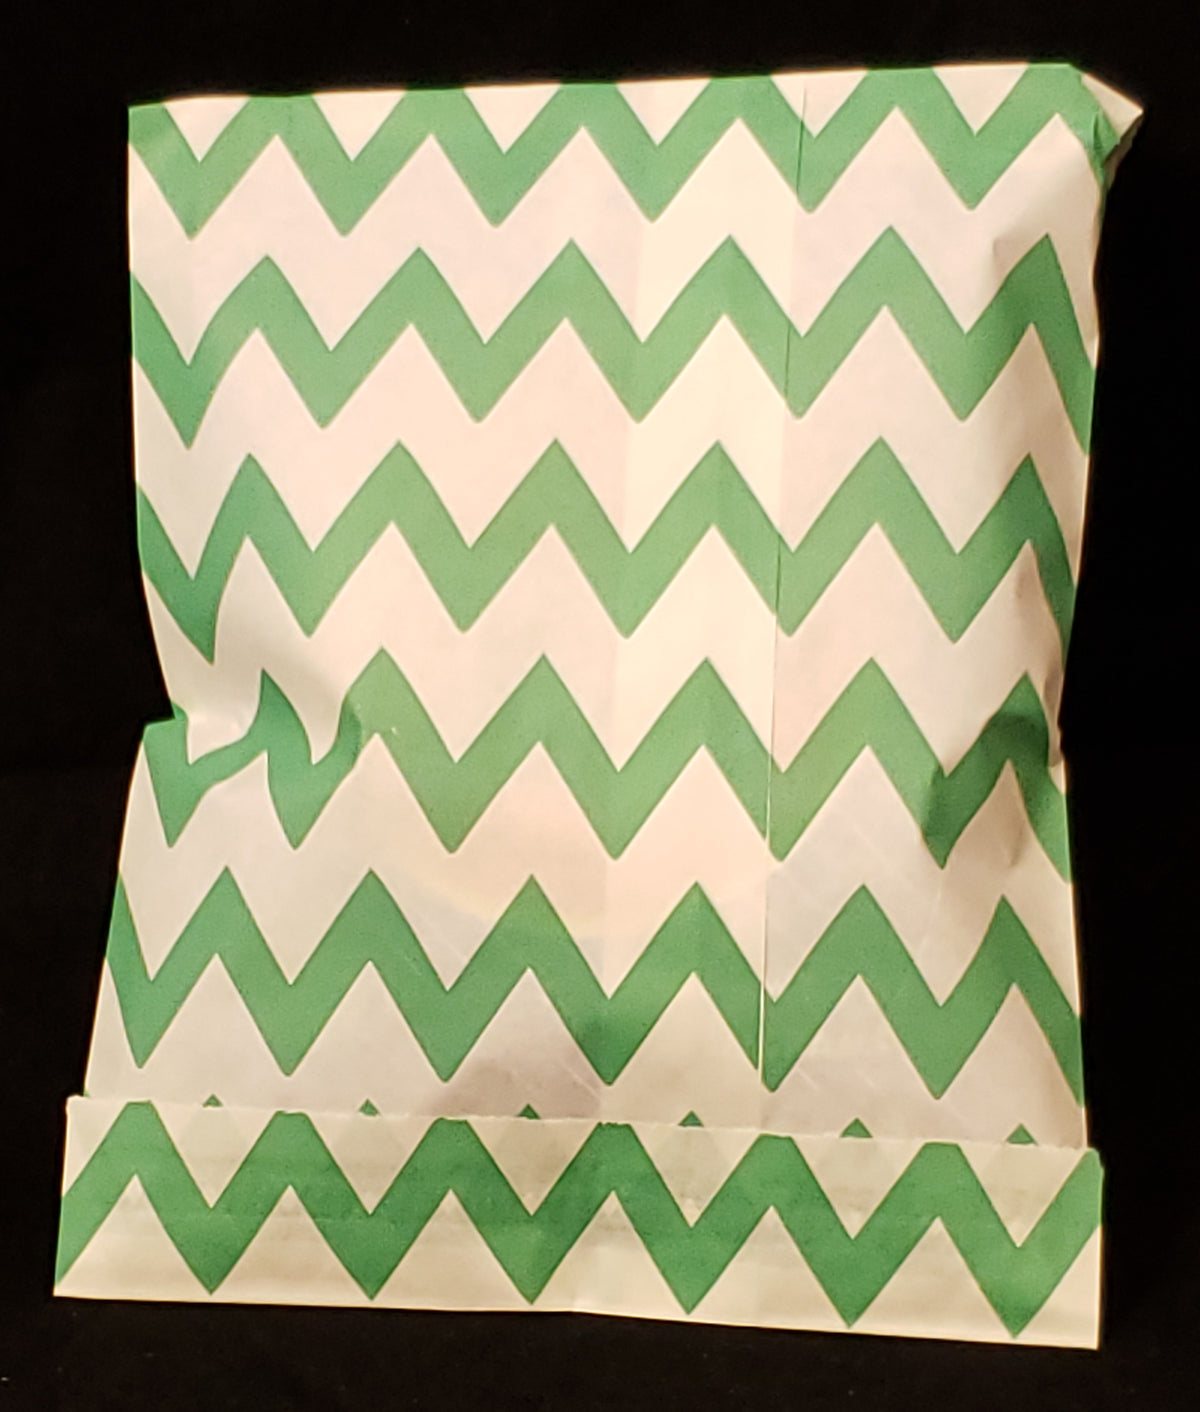 Green Chevron Bag Pekalach Upsherin, Birthday, New Baby